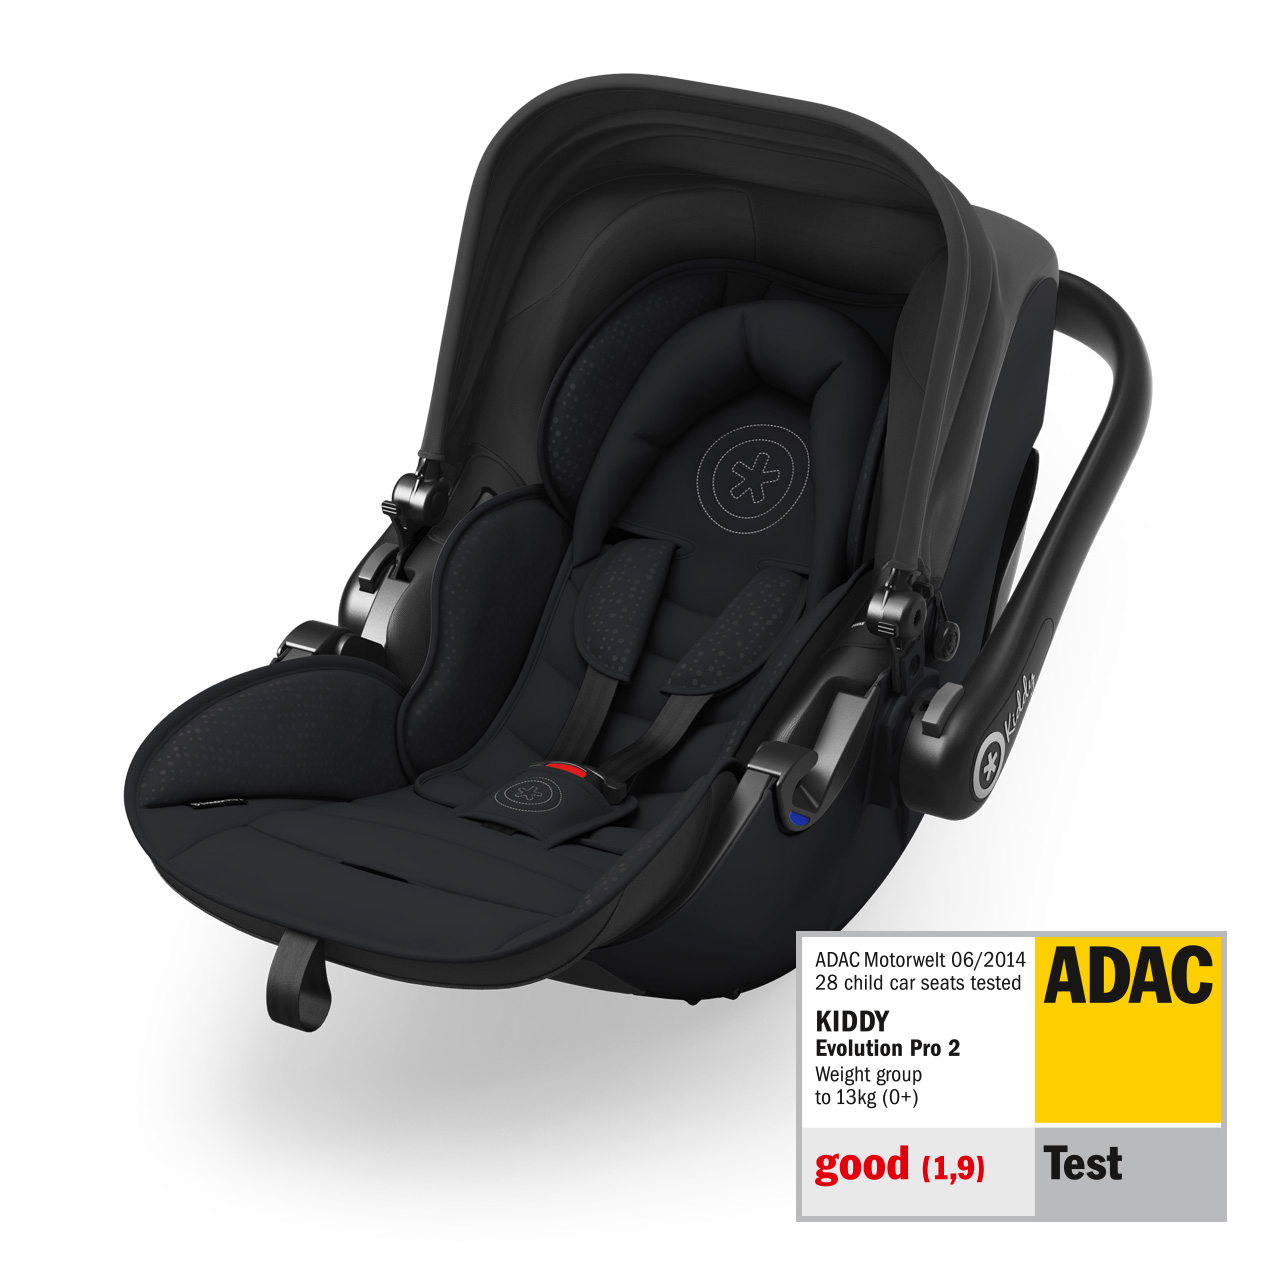 Kiddy Evolution Pro 2 Adac